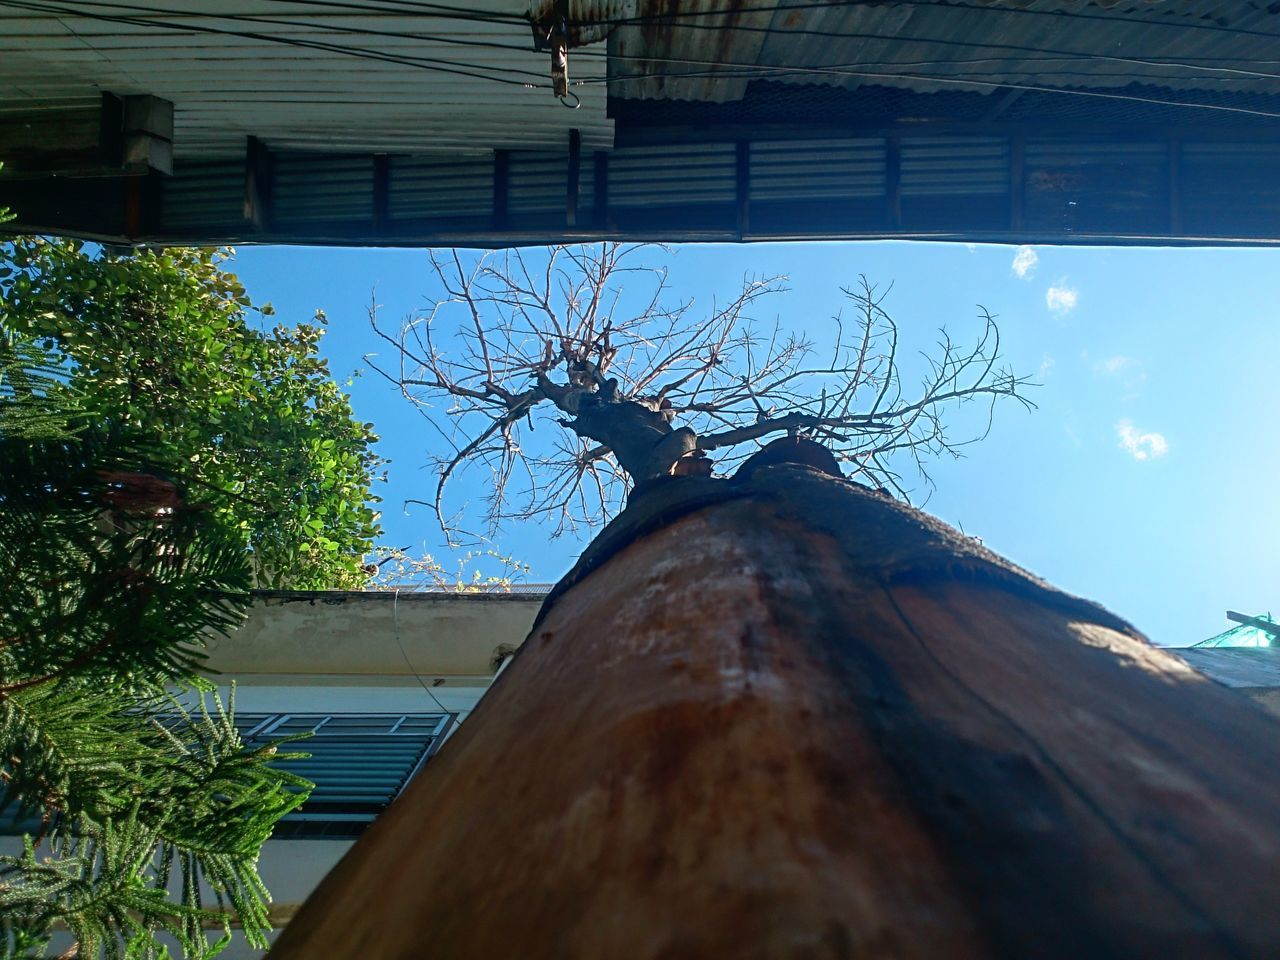 Zinc Disorganized Lack Of Care View Died Tree Texture Details Surface Dry Day Tree No People Outdoors Built Structure Architecture Sky Close-up Nature